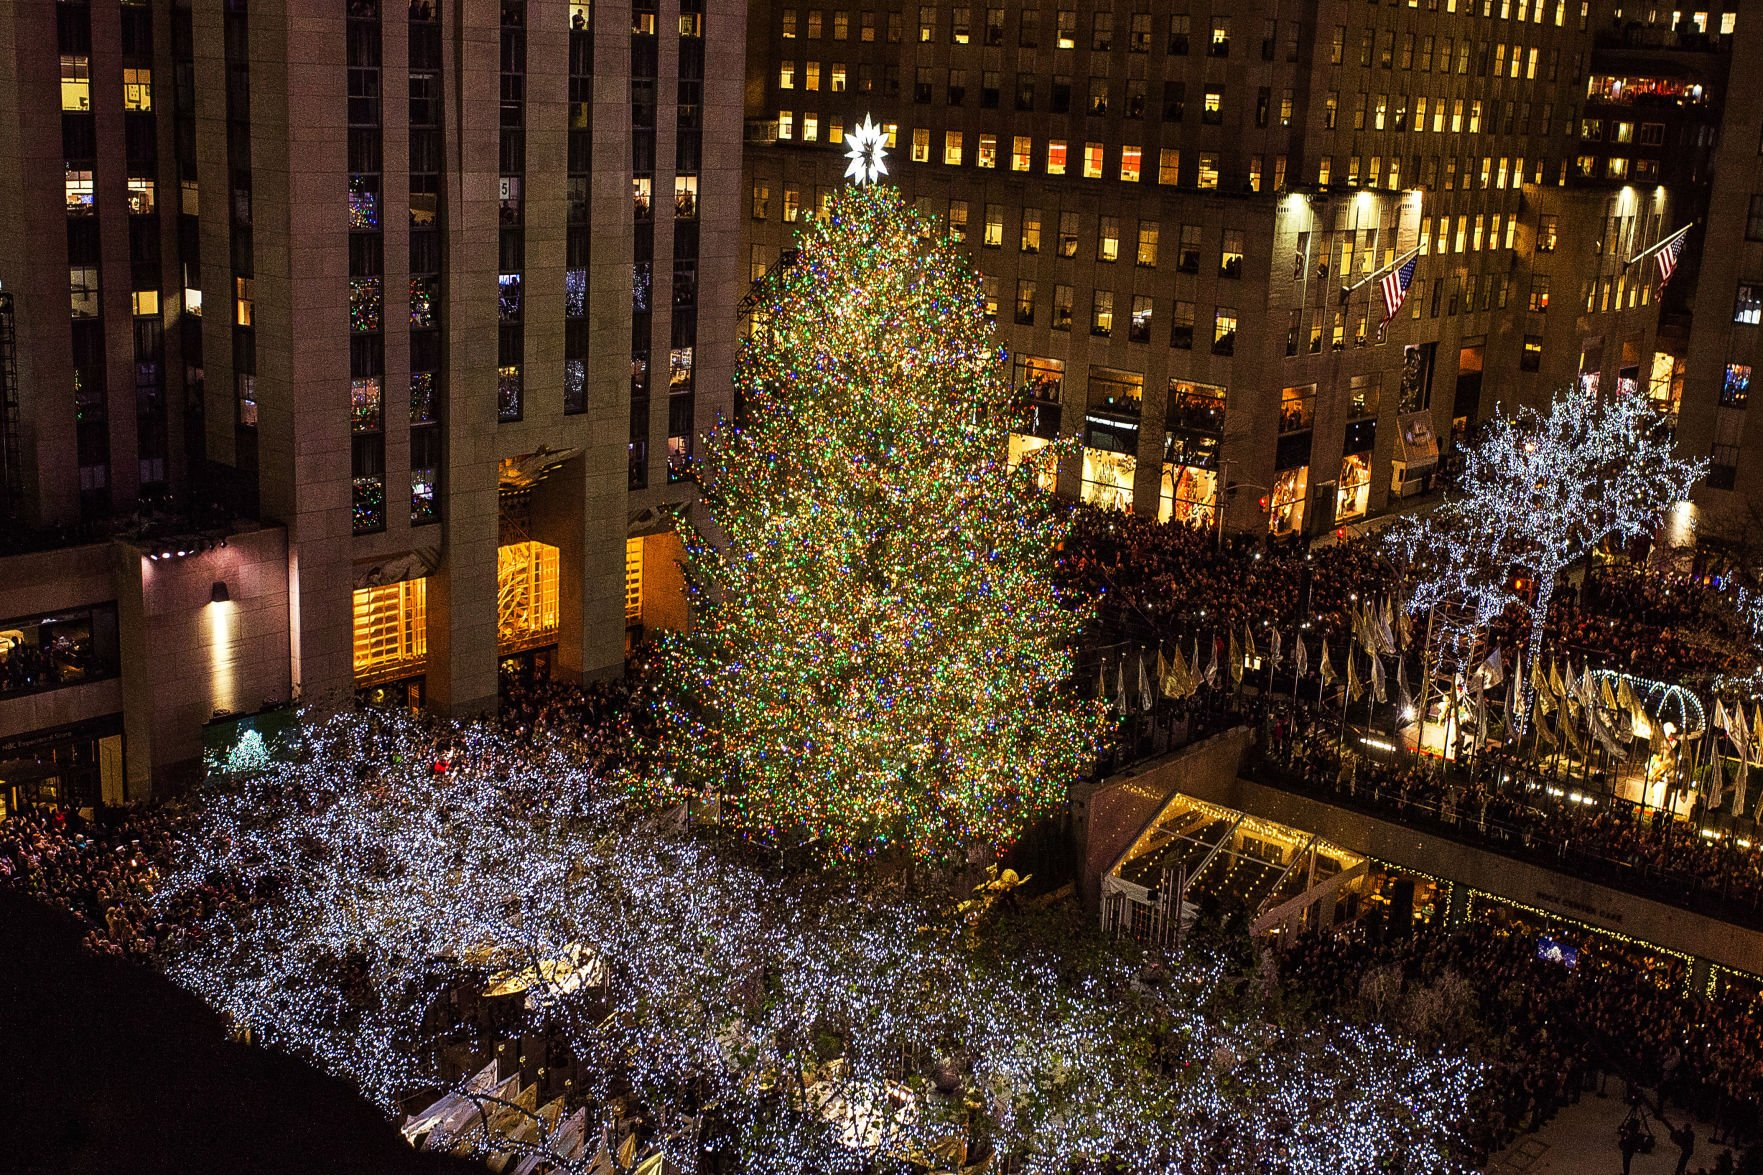 APTOPIX Rockefeller Center Christmas Tree 2017 & Thousands gather for Rockefeller Christmas tree lighting | The ...